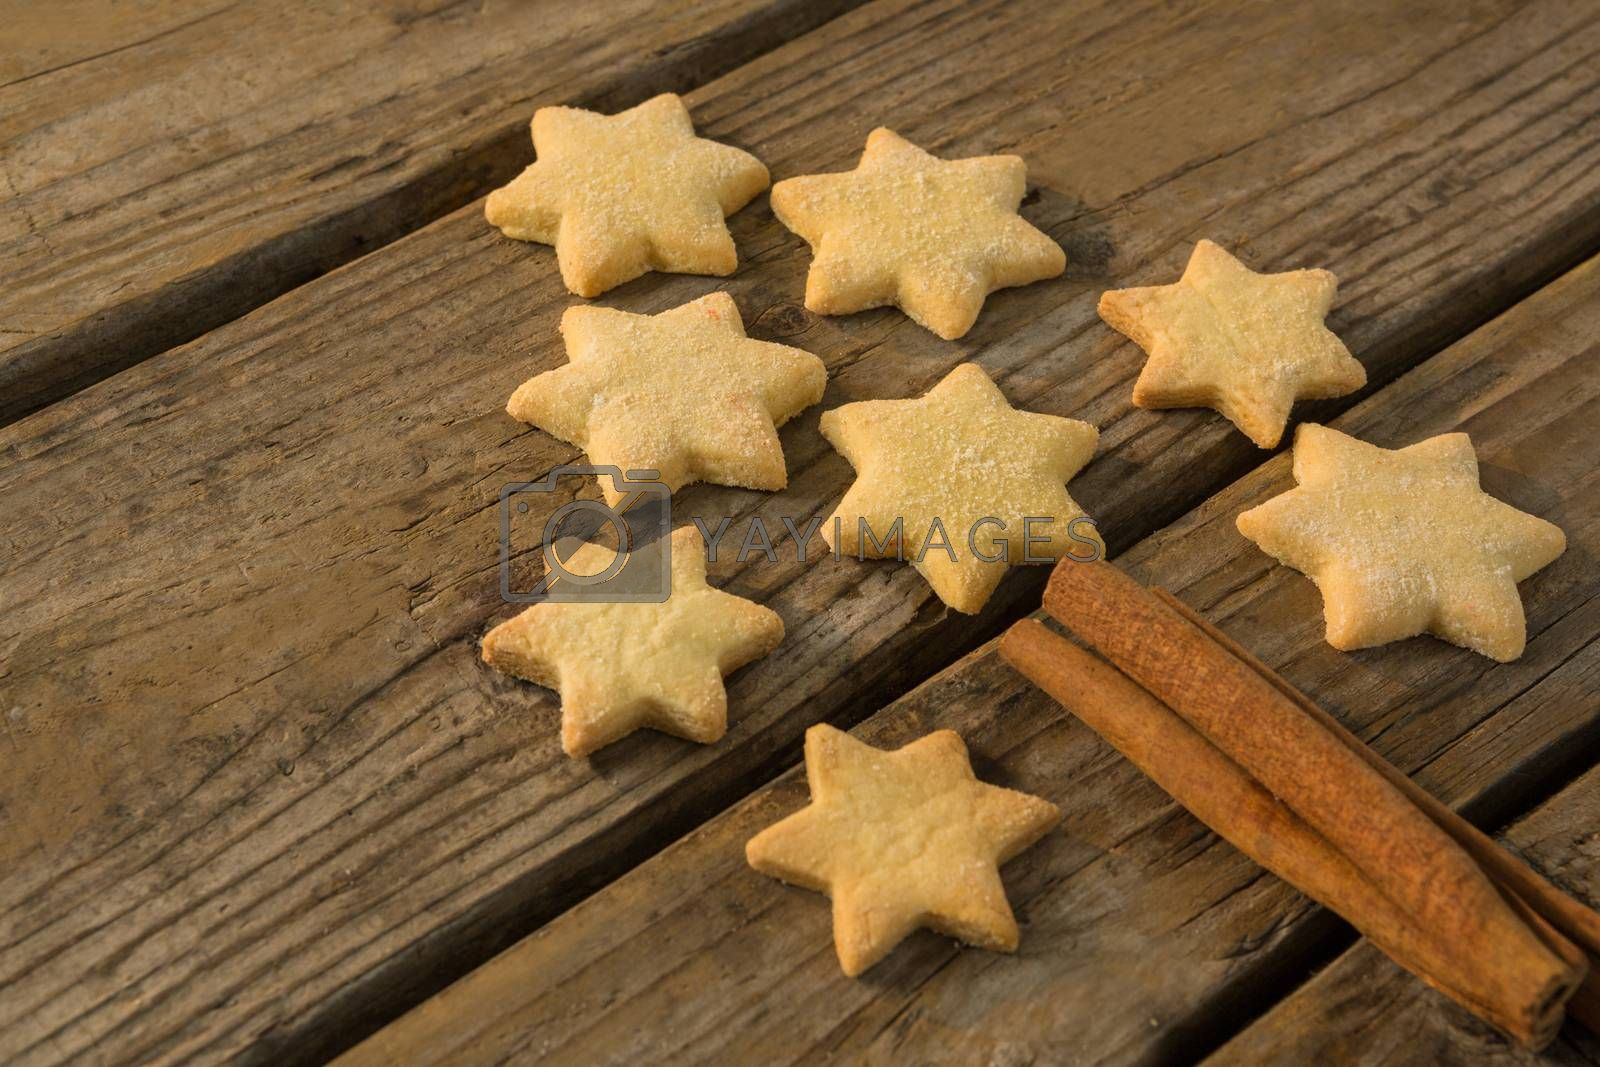 Close up of Christmas tree made with star shape cookie and cinnamon stick by Wavebreakmedia